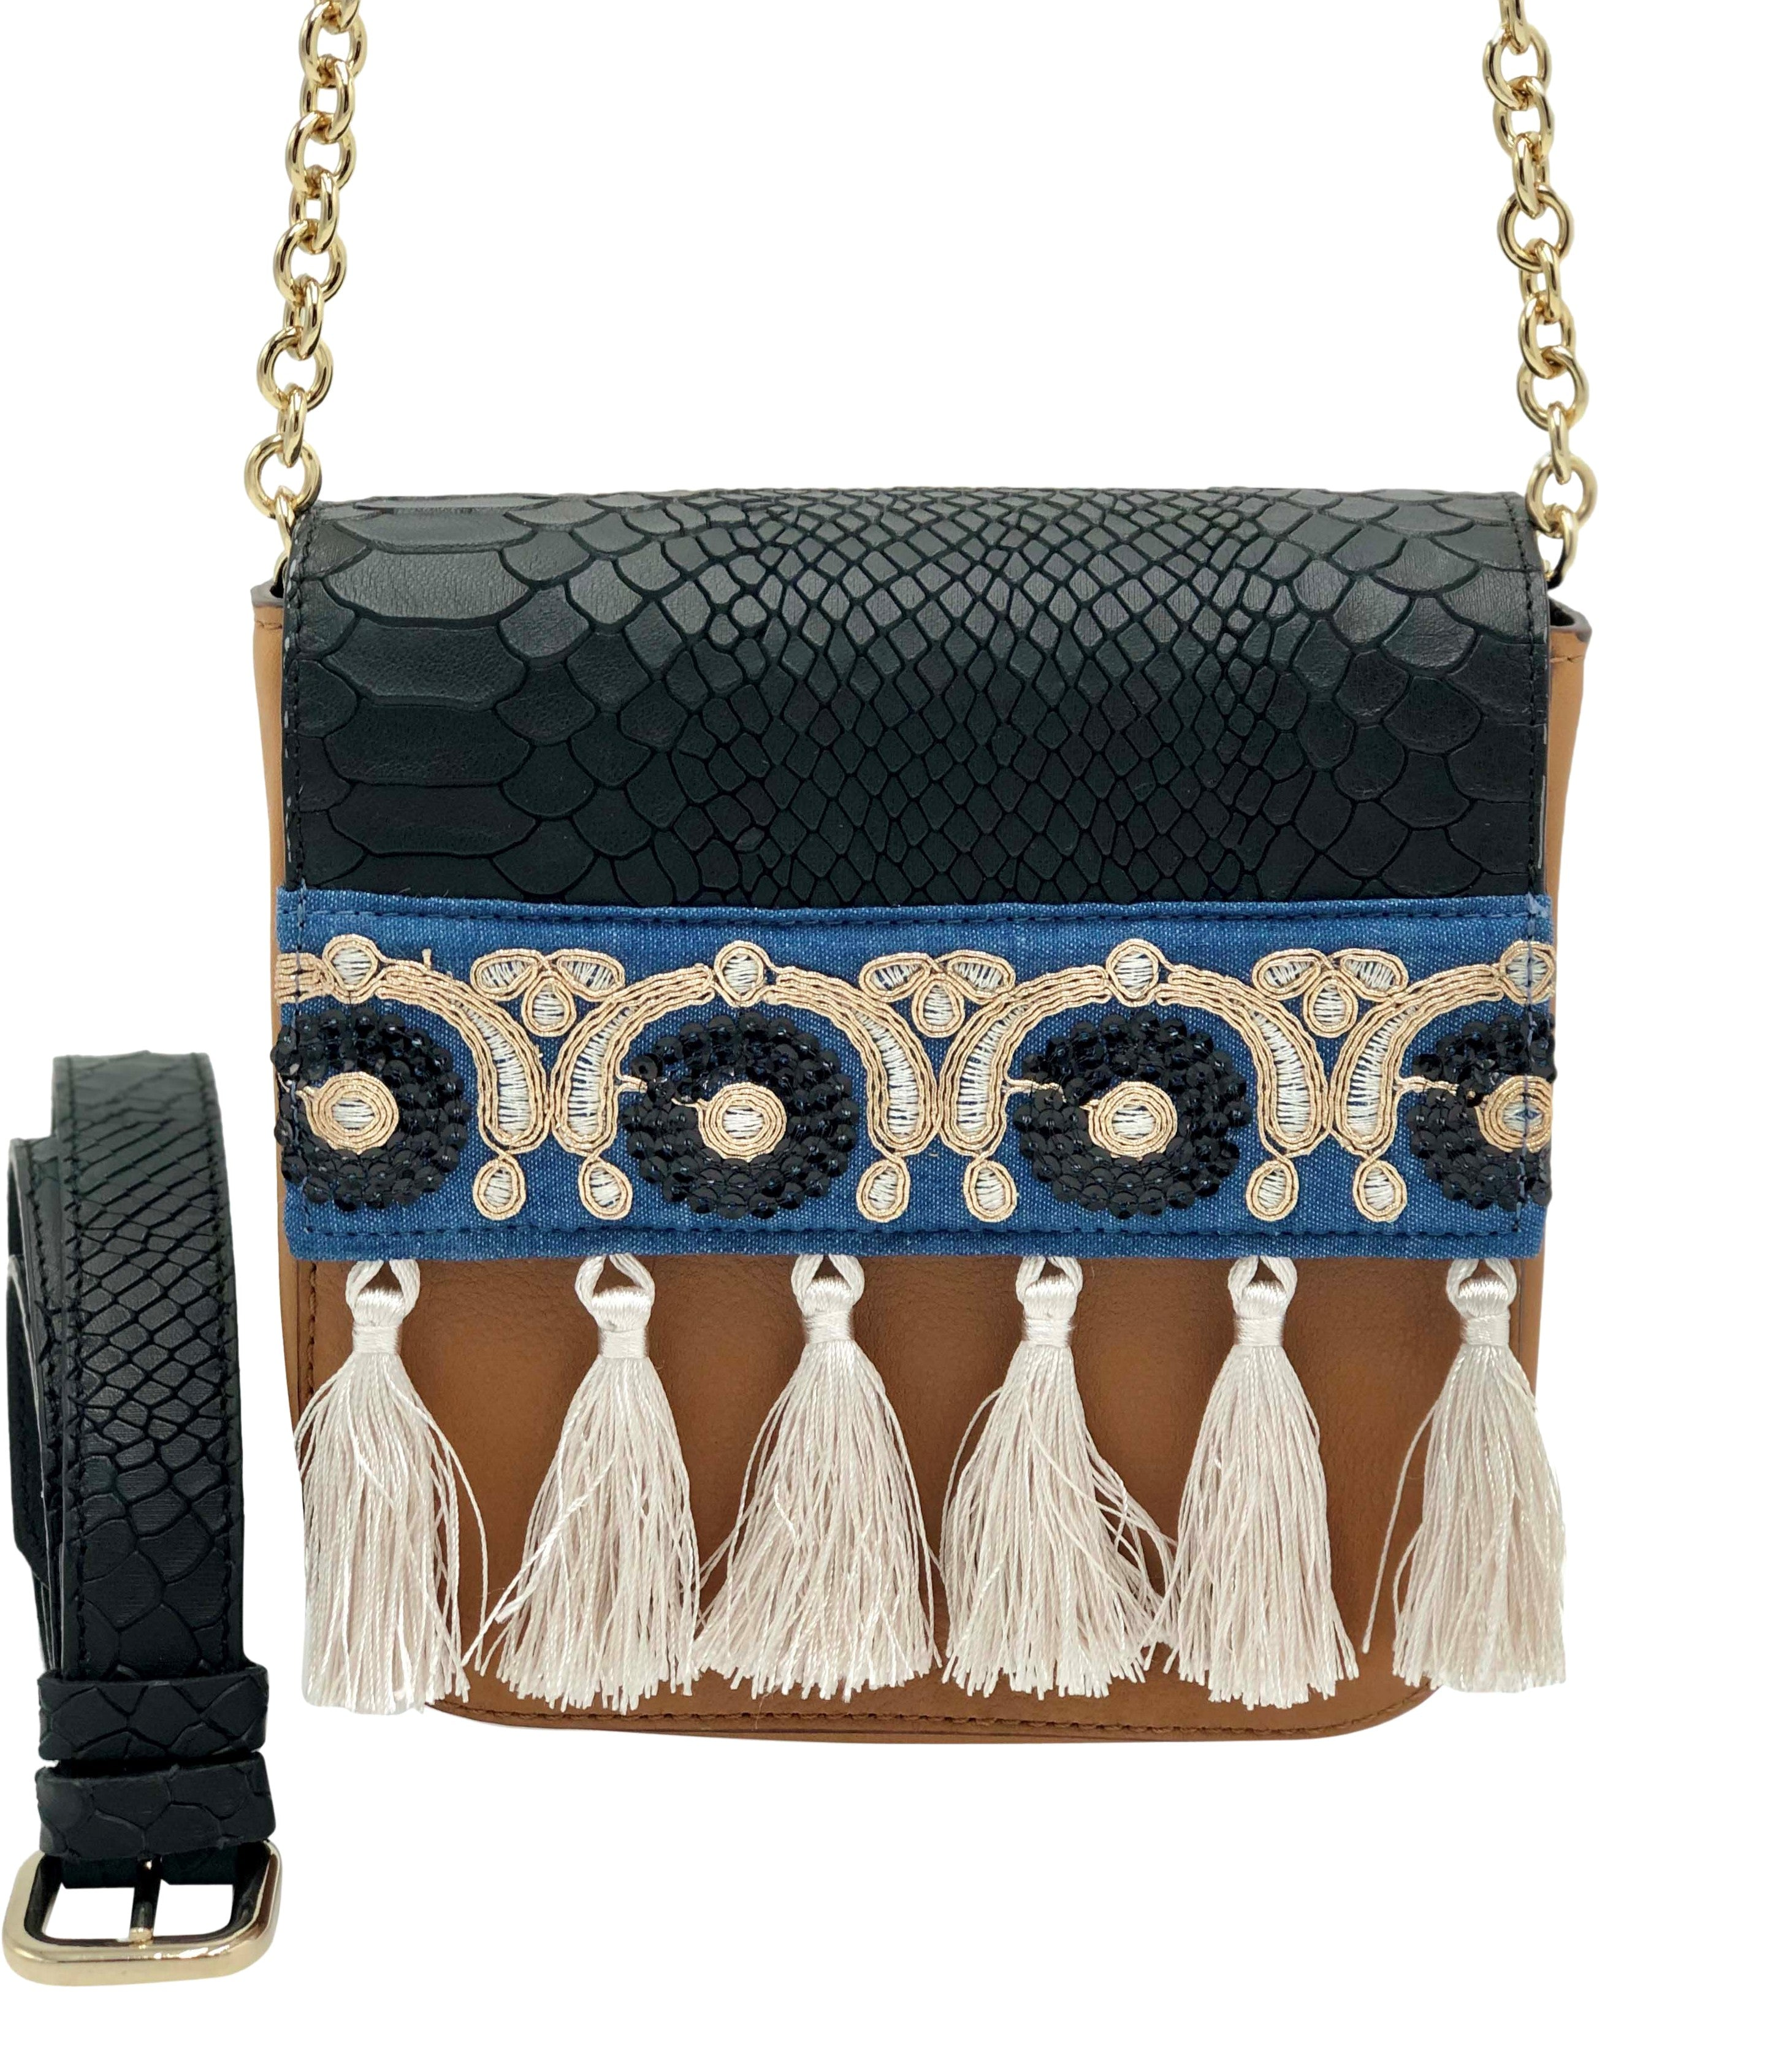 Embossed black & light brown leather bag with tassels